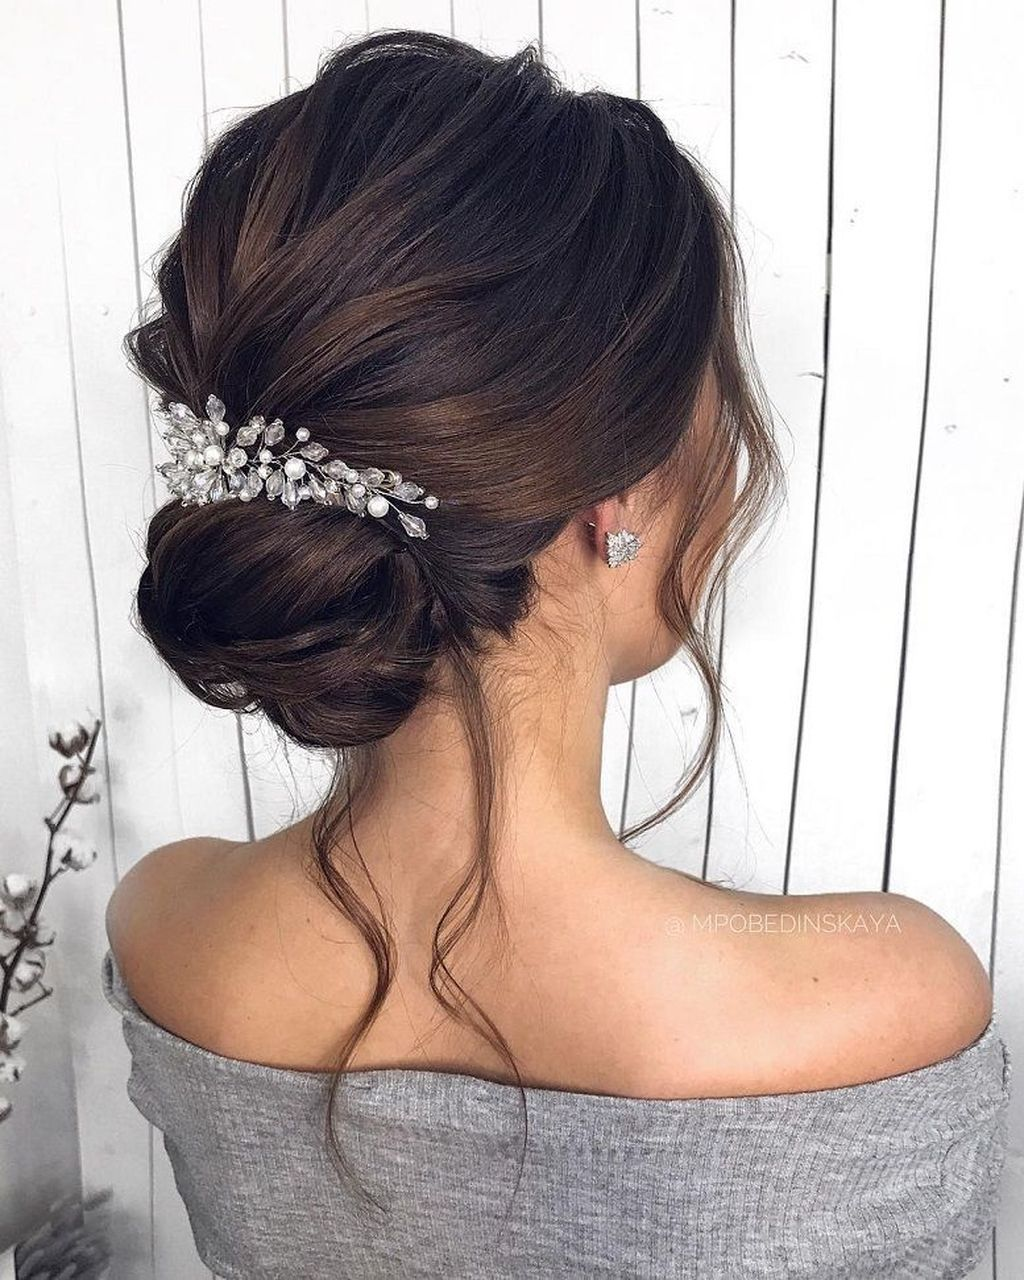 49 Unique Bun Hairstyles Ideas That Youll Love - ADDICFASHION | Hair styles, Bridal hair updo, Bride updo